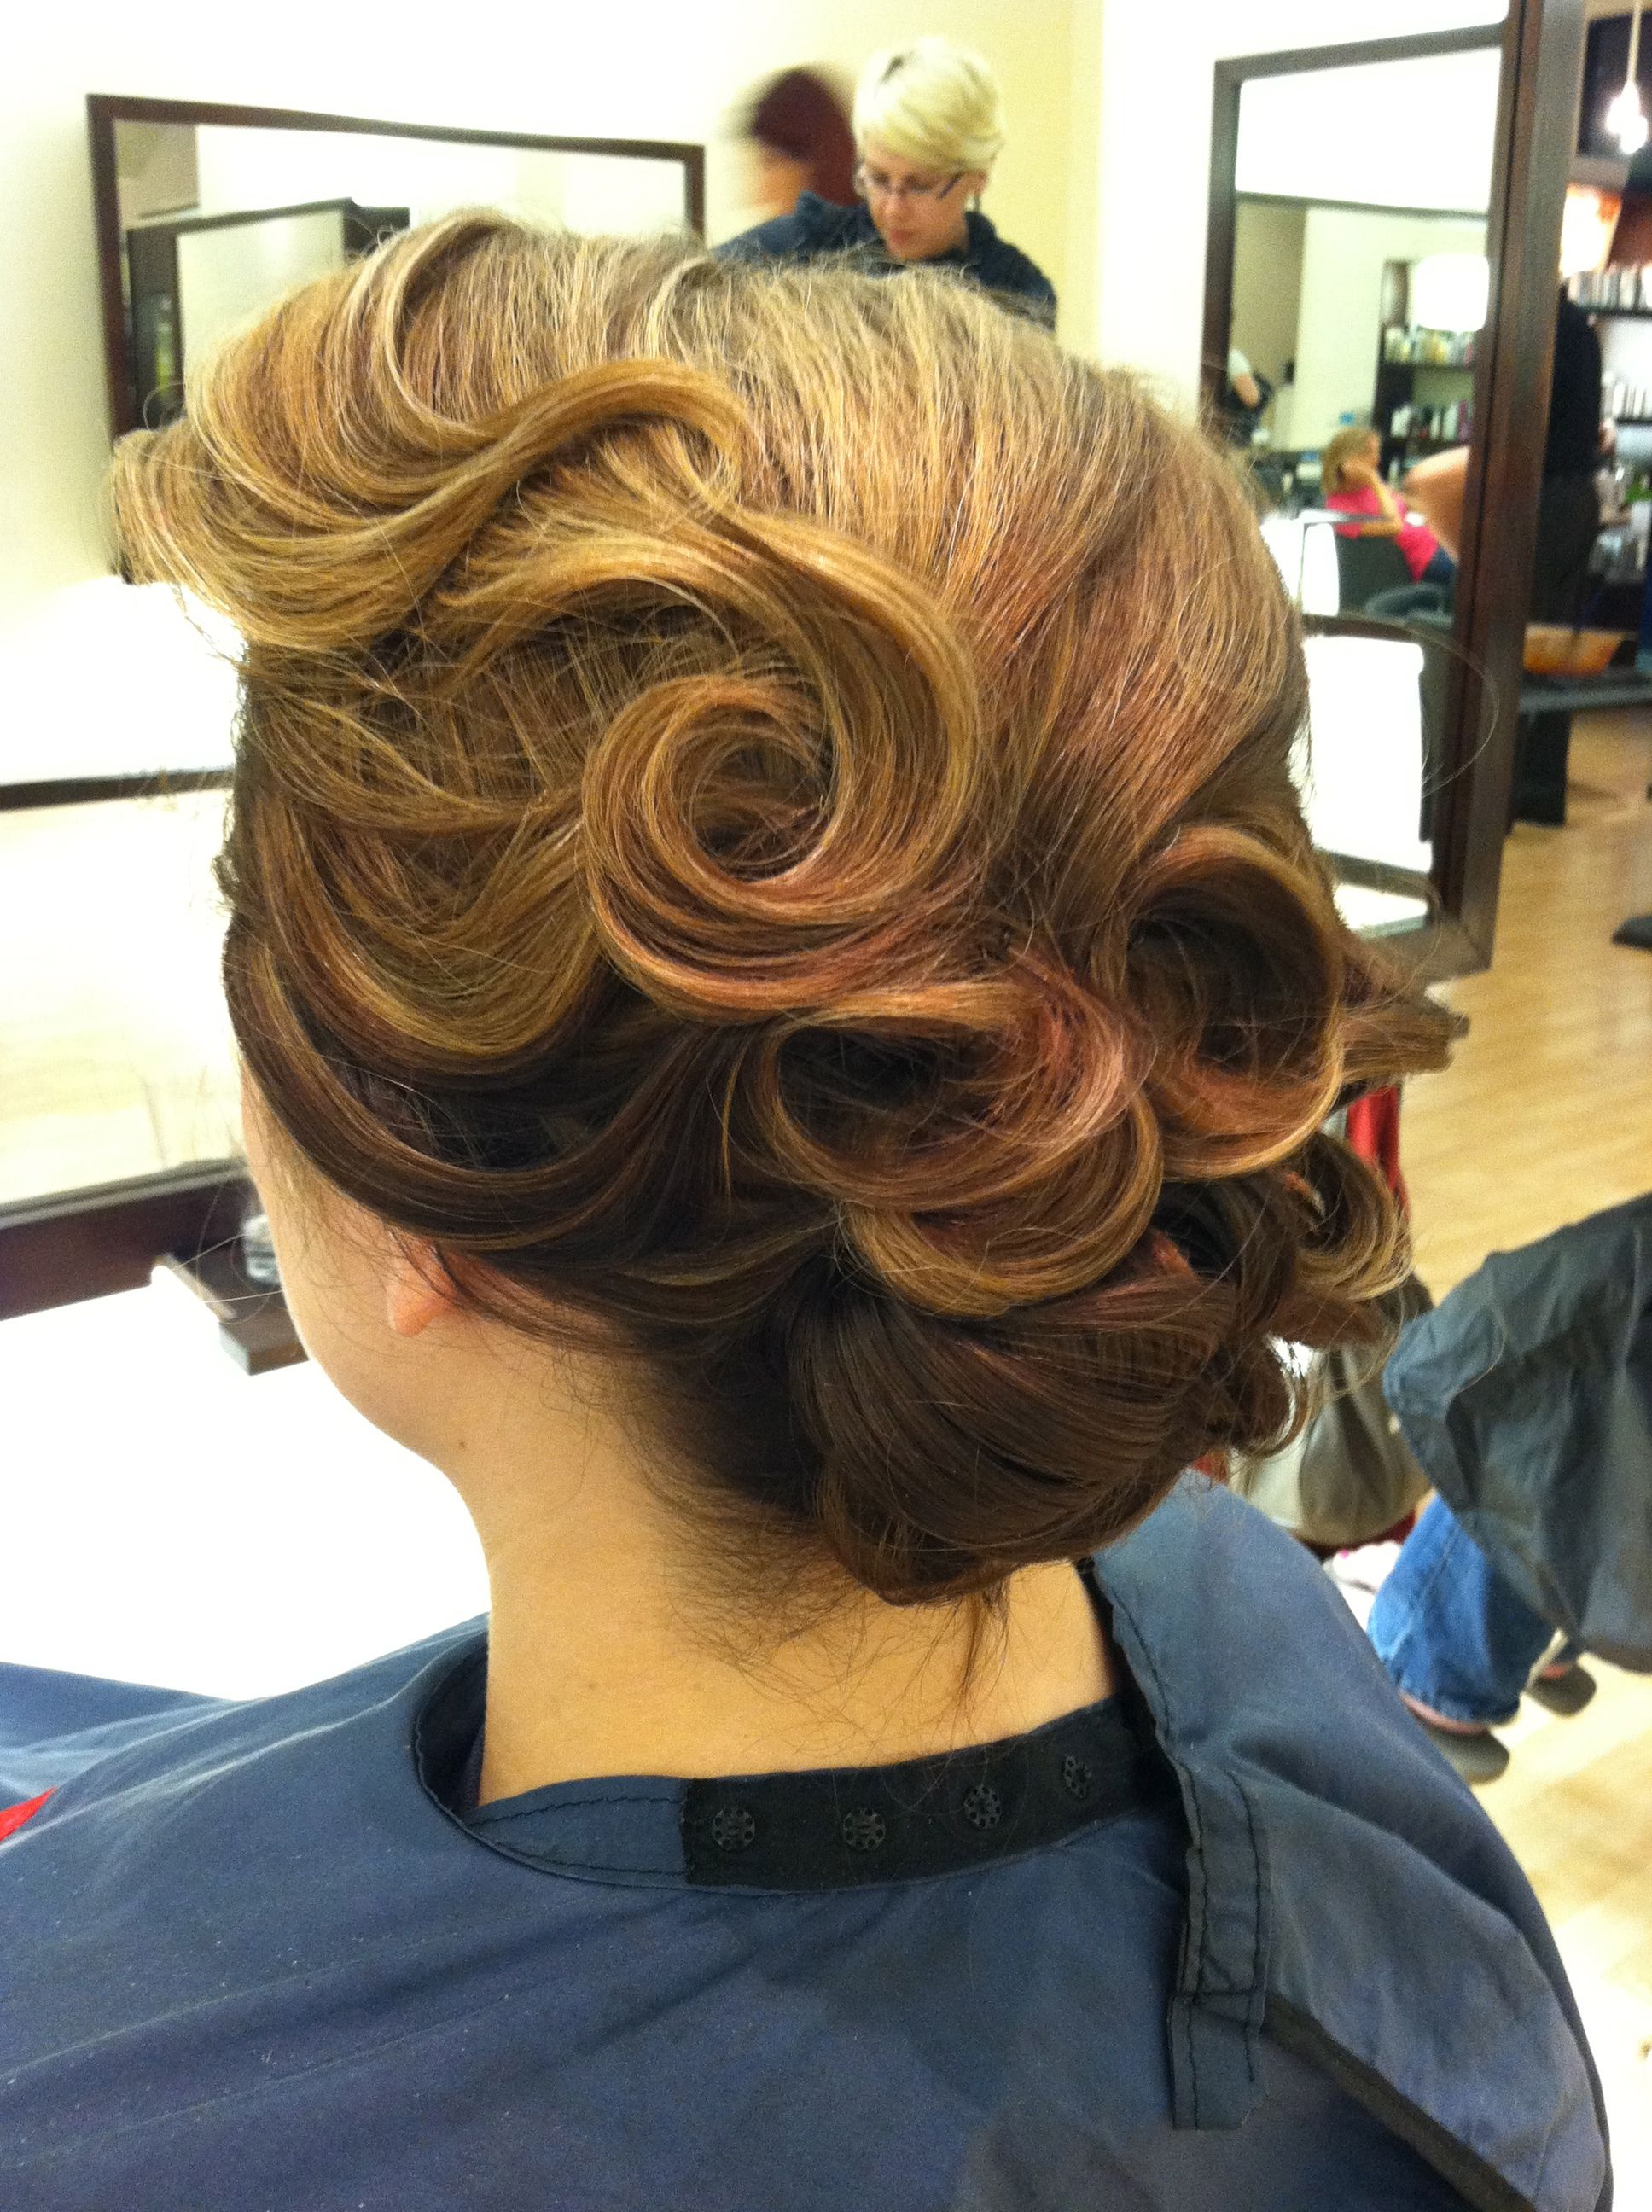 Fun 40's style inspired updo on bride. So much fun to do!